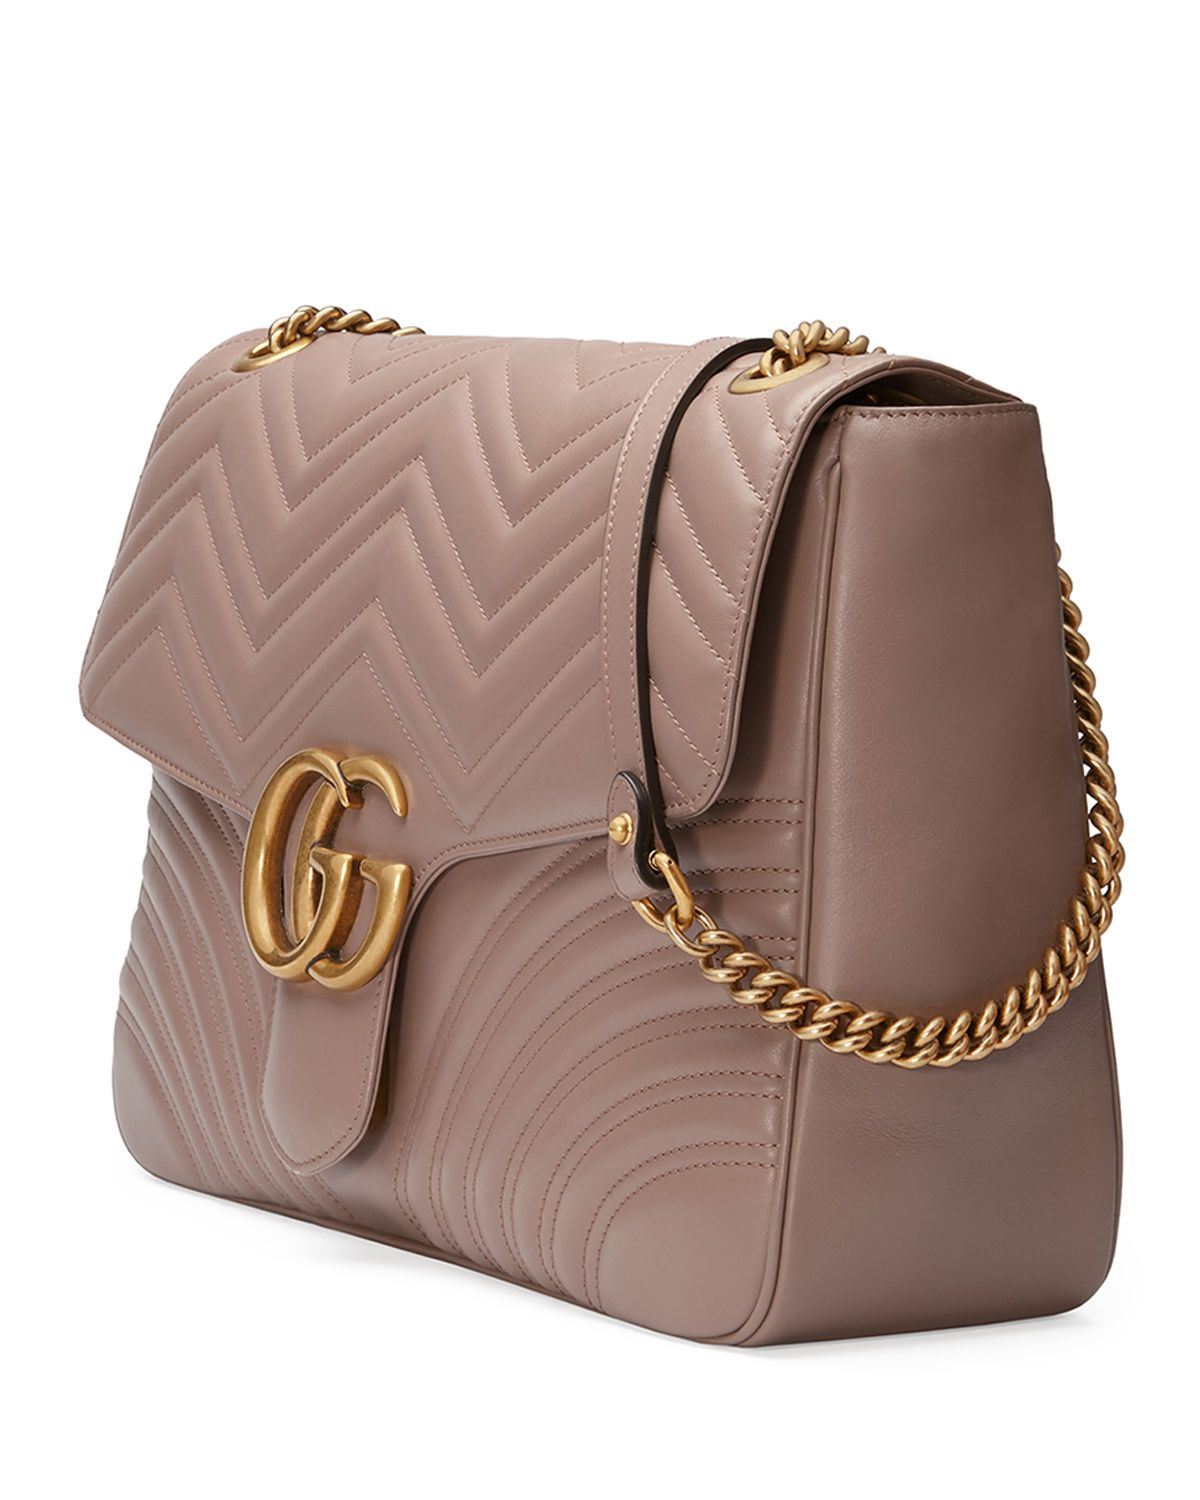 cb677e3f4fcd Gucci GG Marmont Large Chevron Quilted Leather Shoulder Bag ...